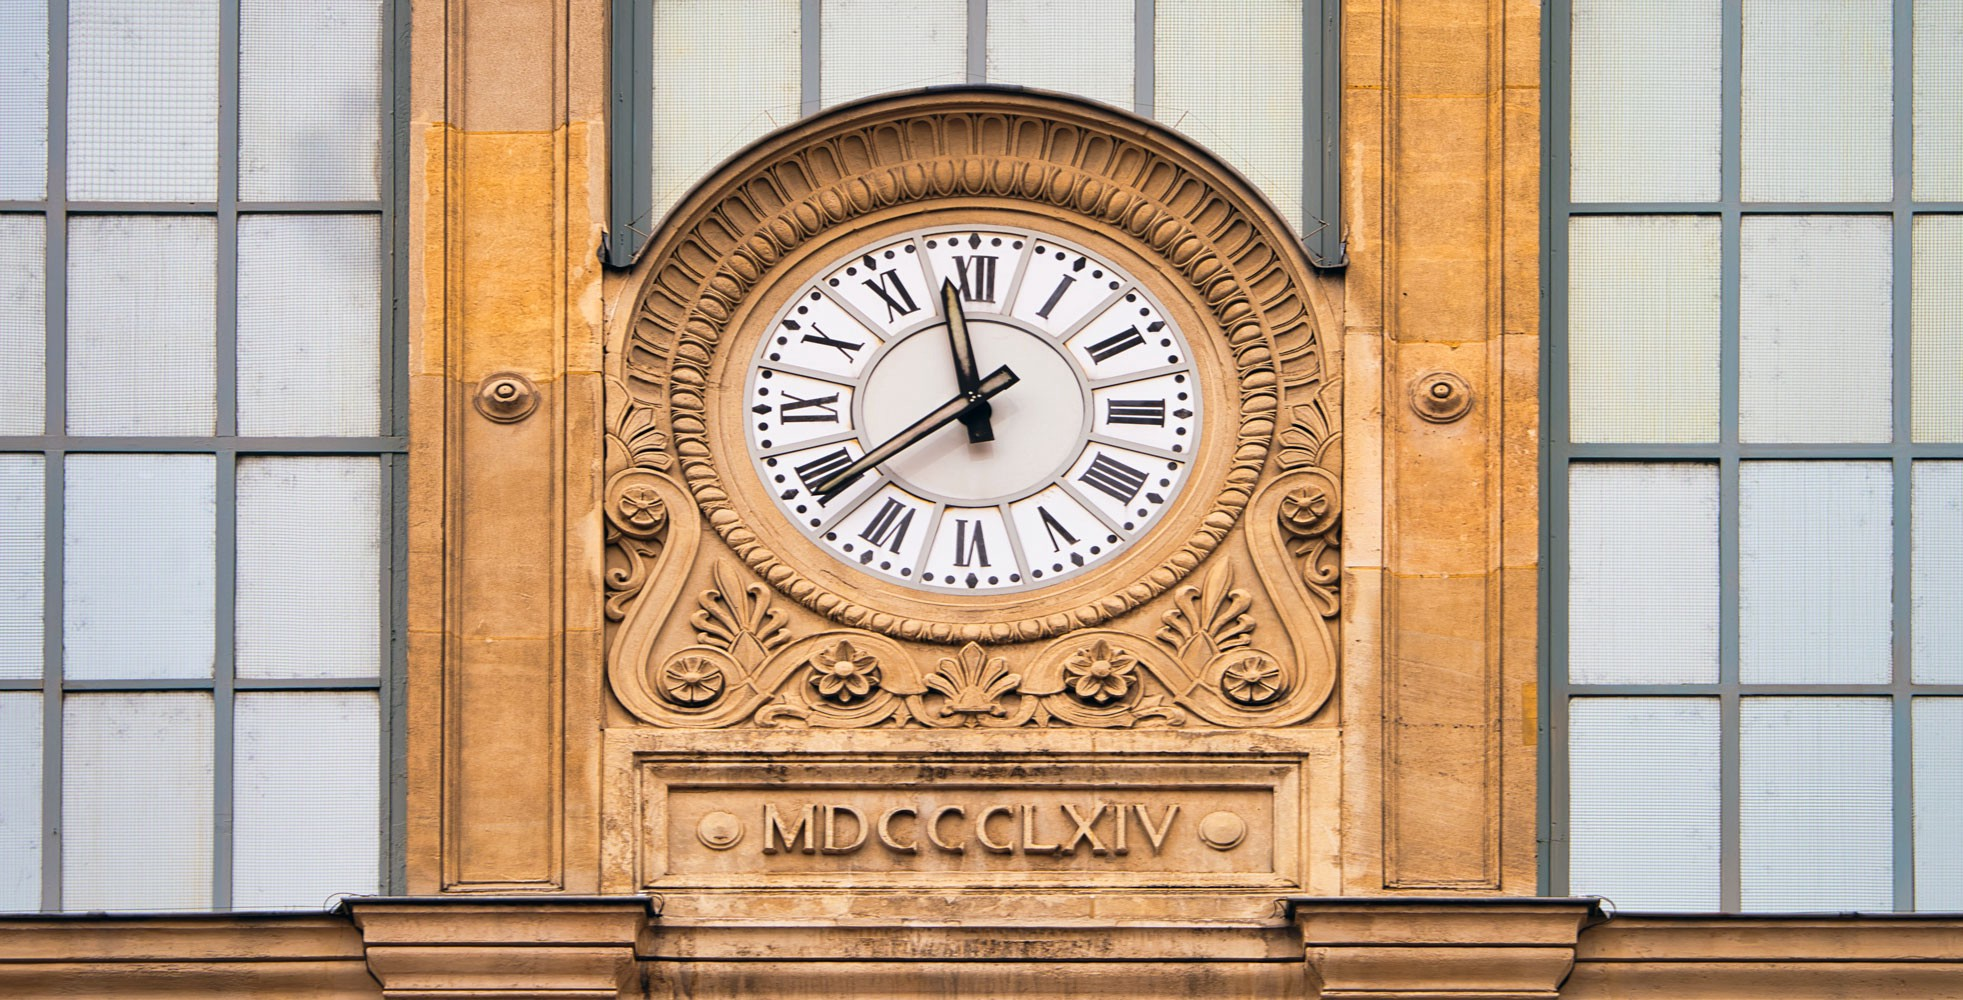 Roman numerals on a clock and showing year 1864